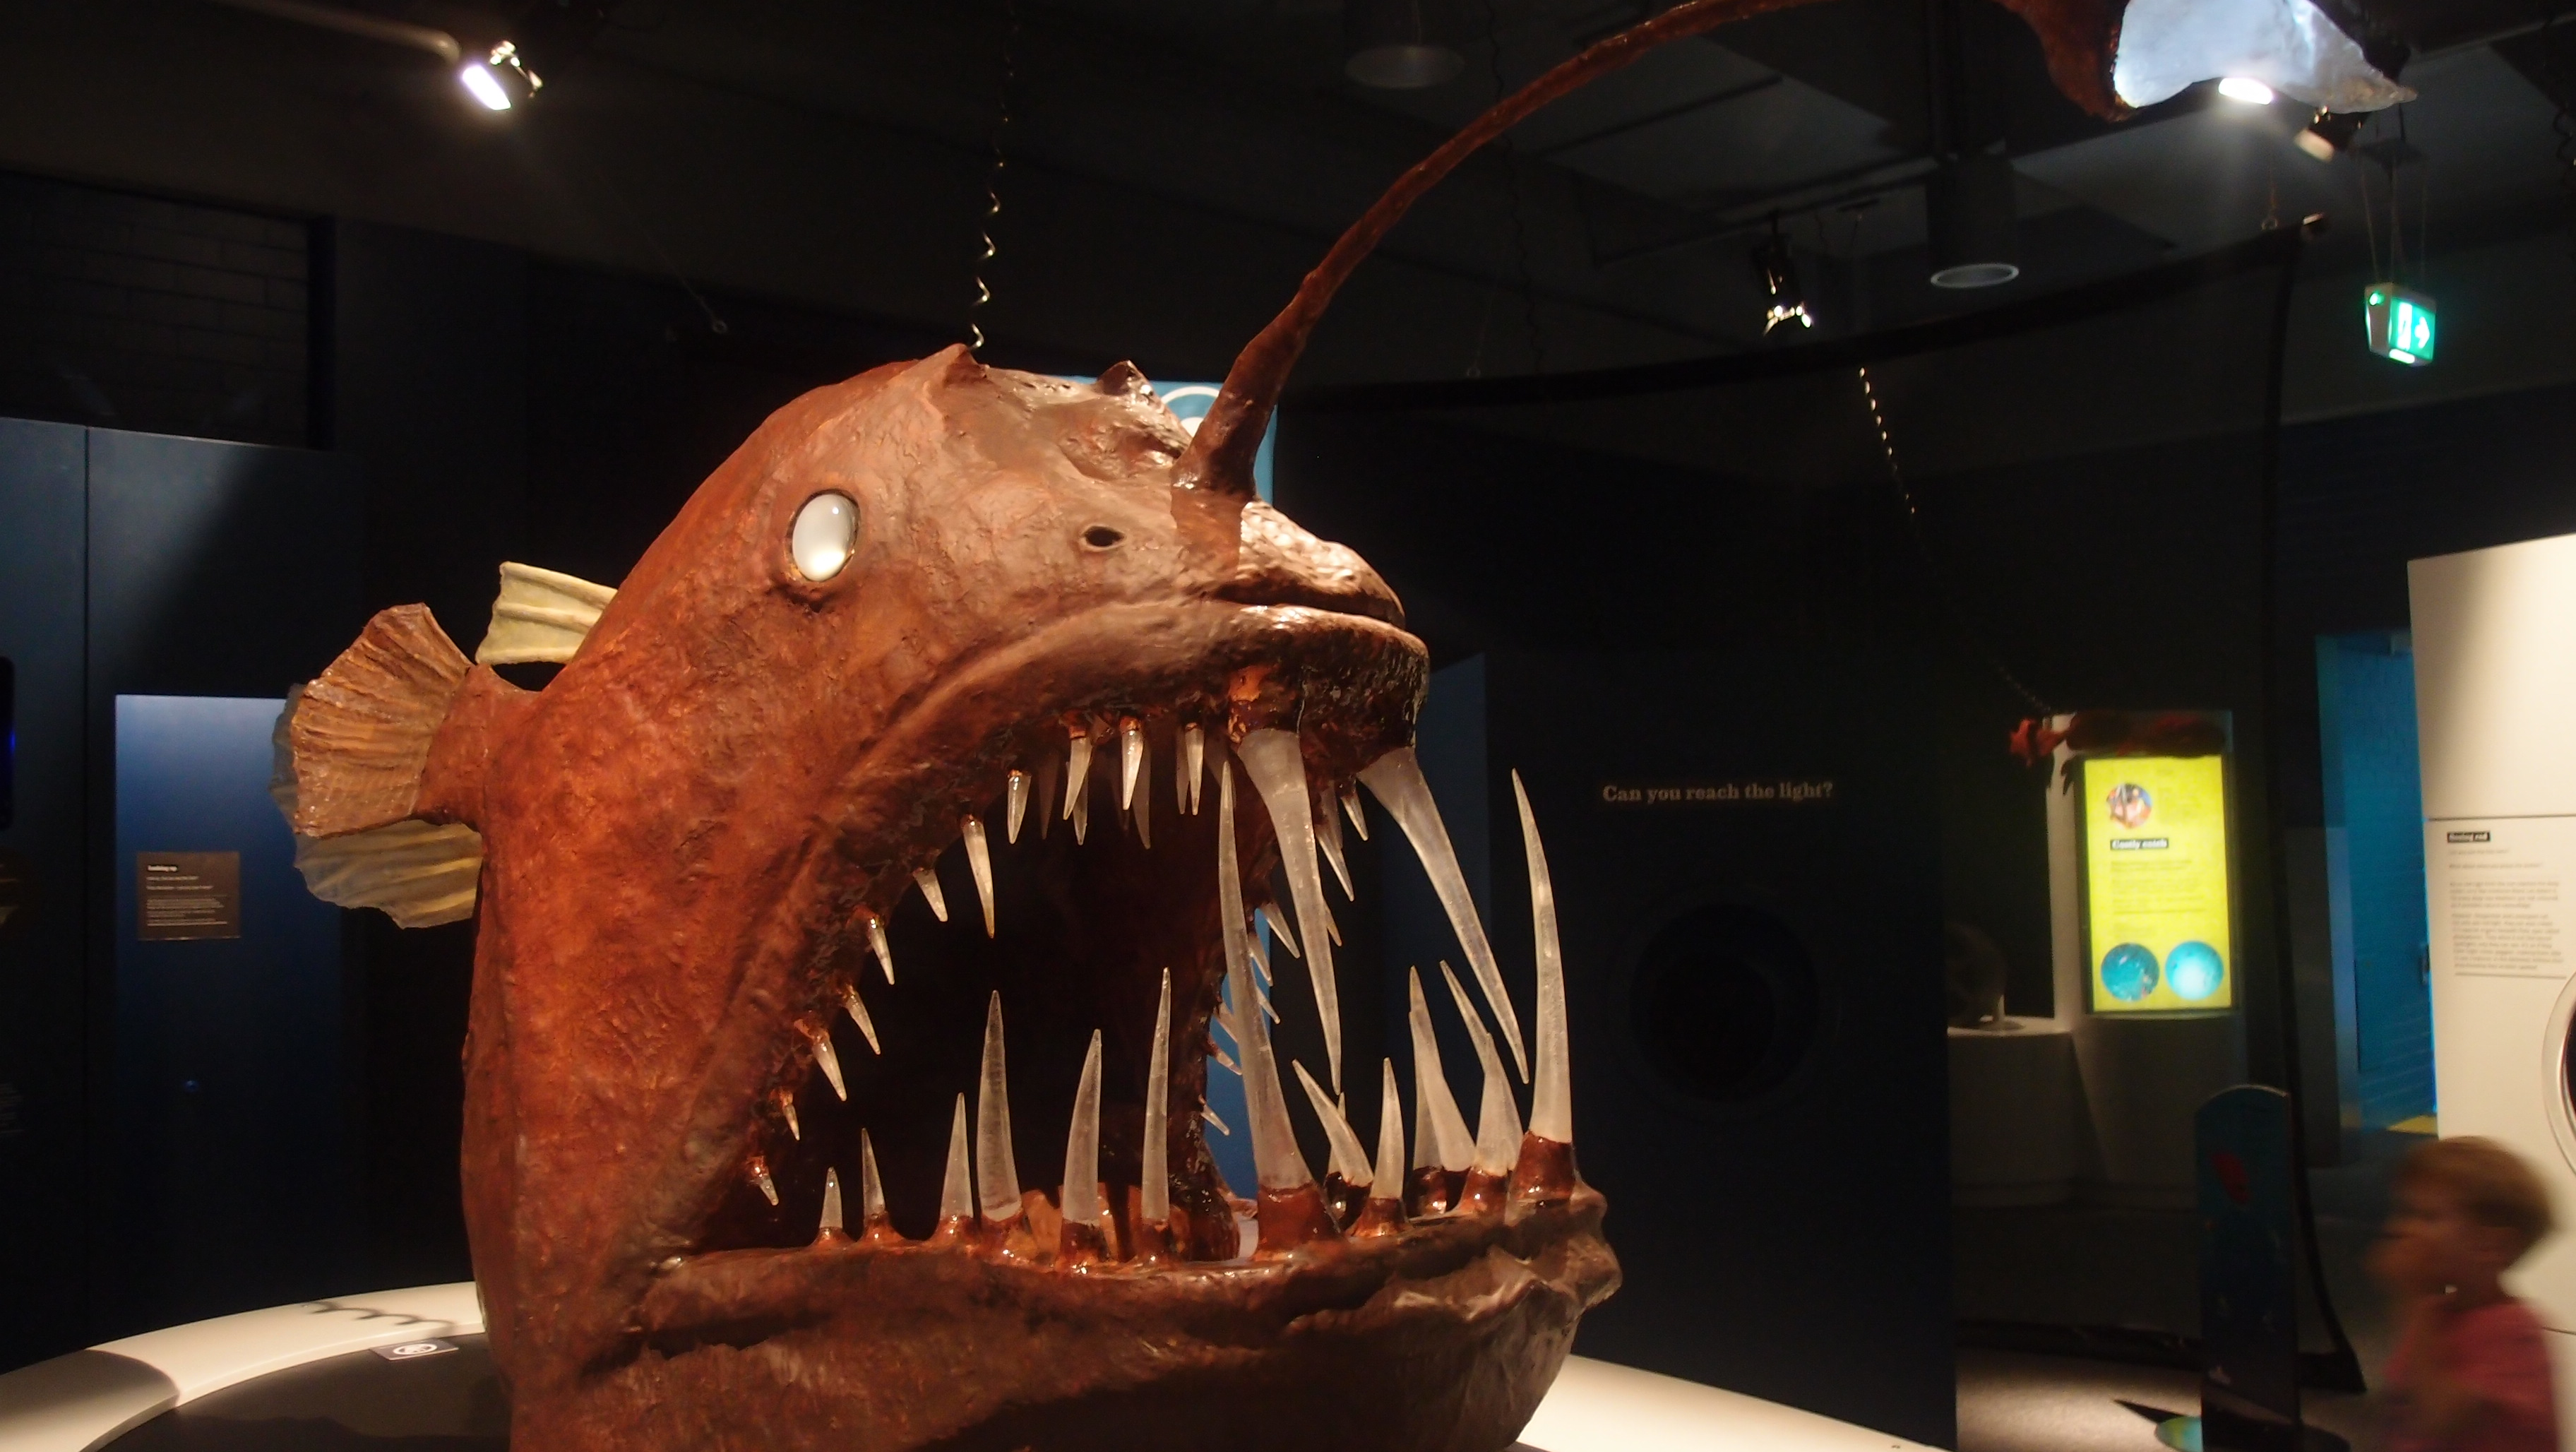 Weekend in canberra meseemeese for Angler fish size